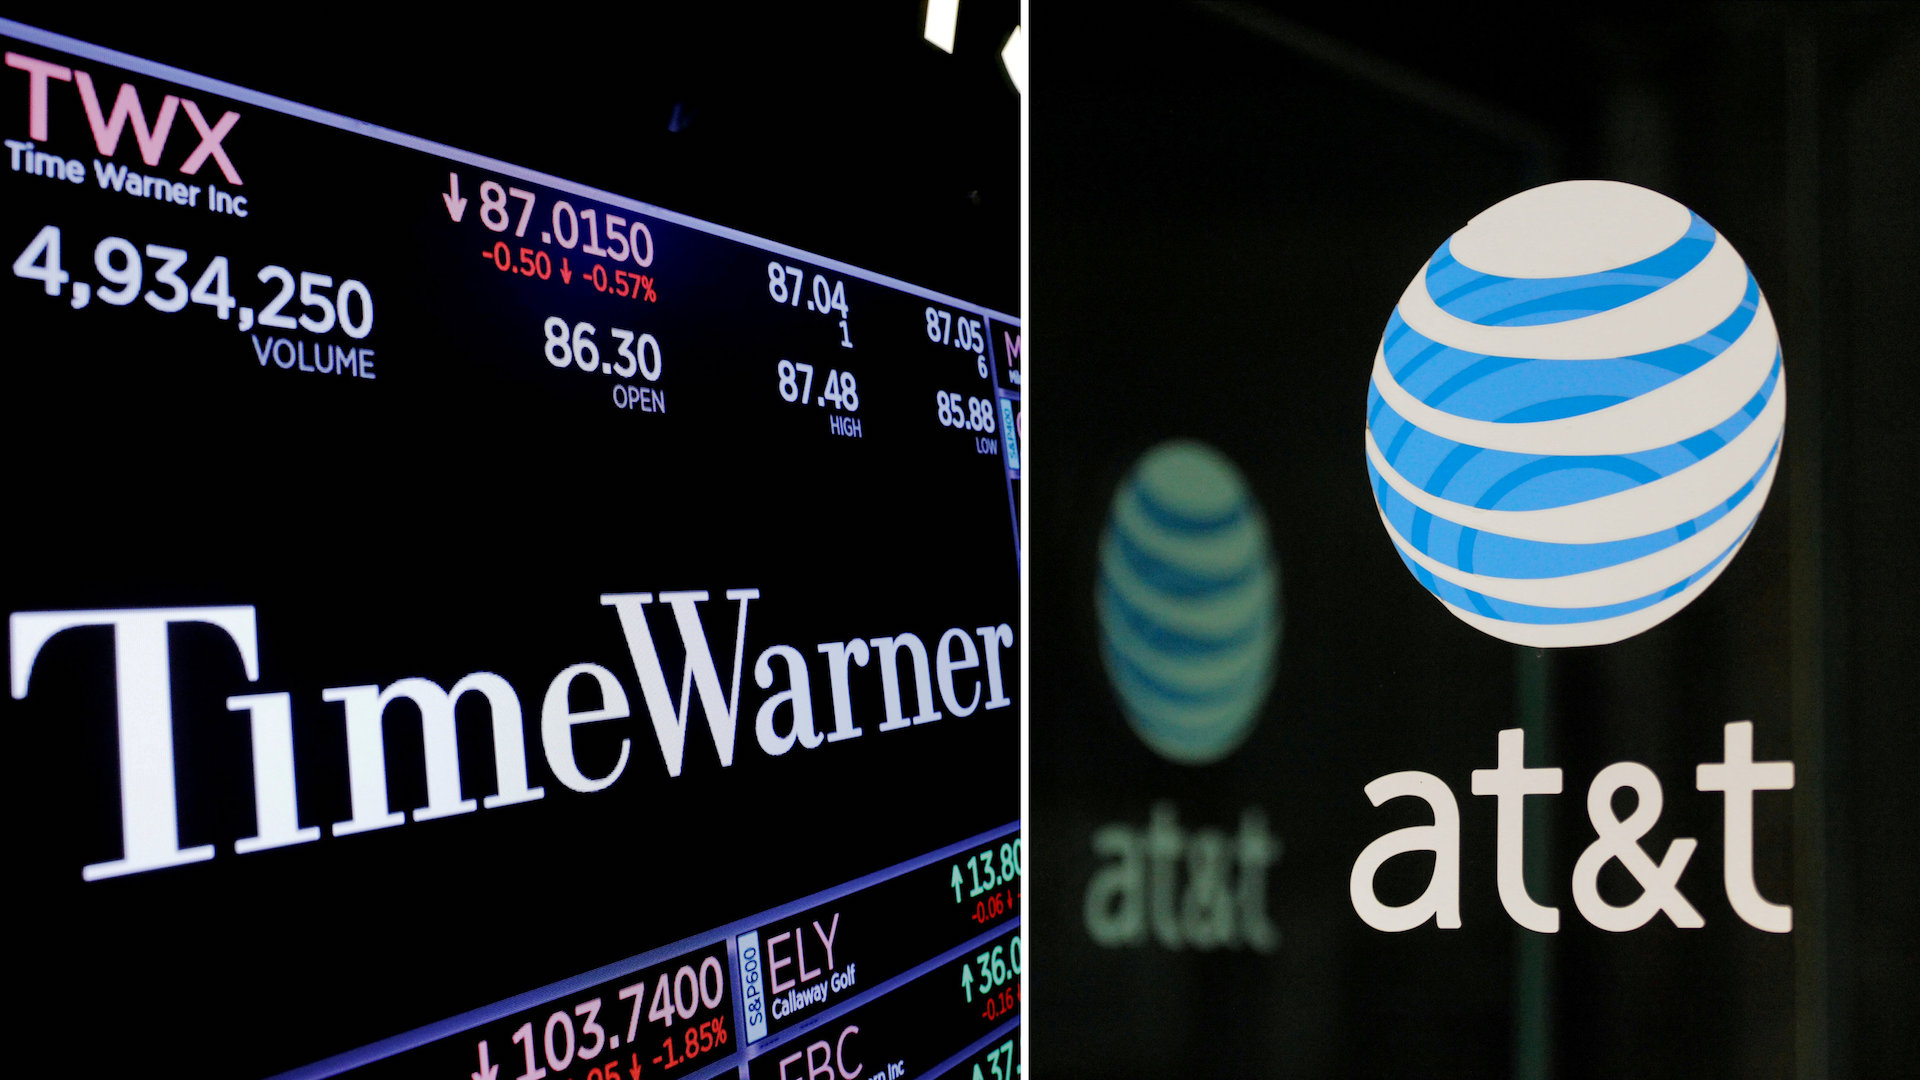 AT&T-Time Warner merger approved, setting the stage for more consolidation across corporate America